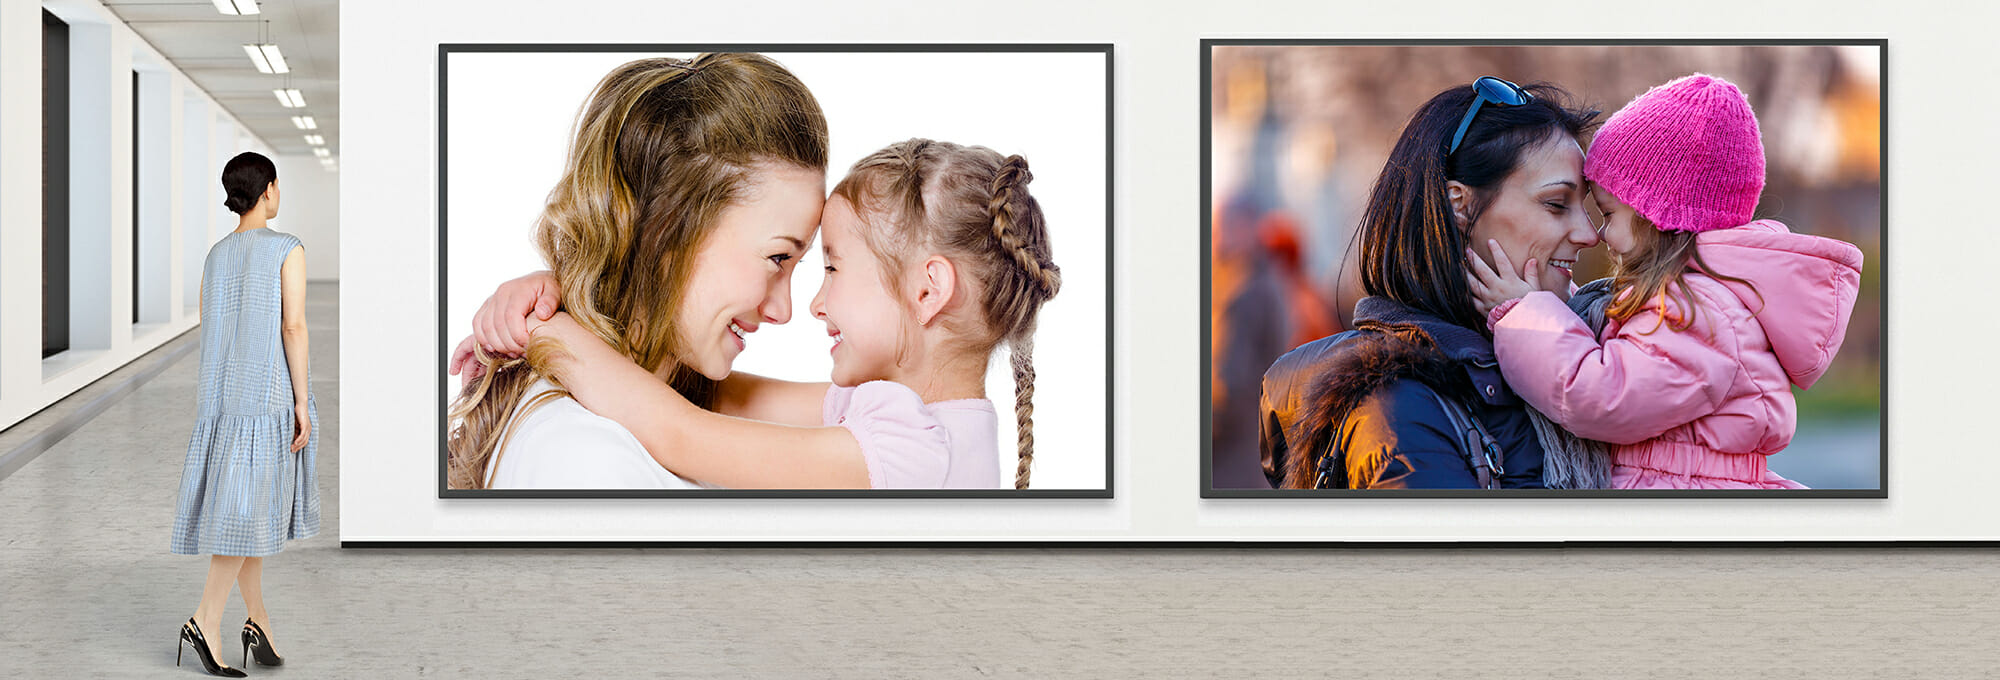 how to improve family photographs take pictures of kids